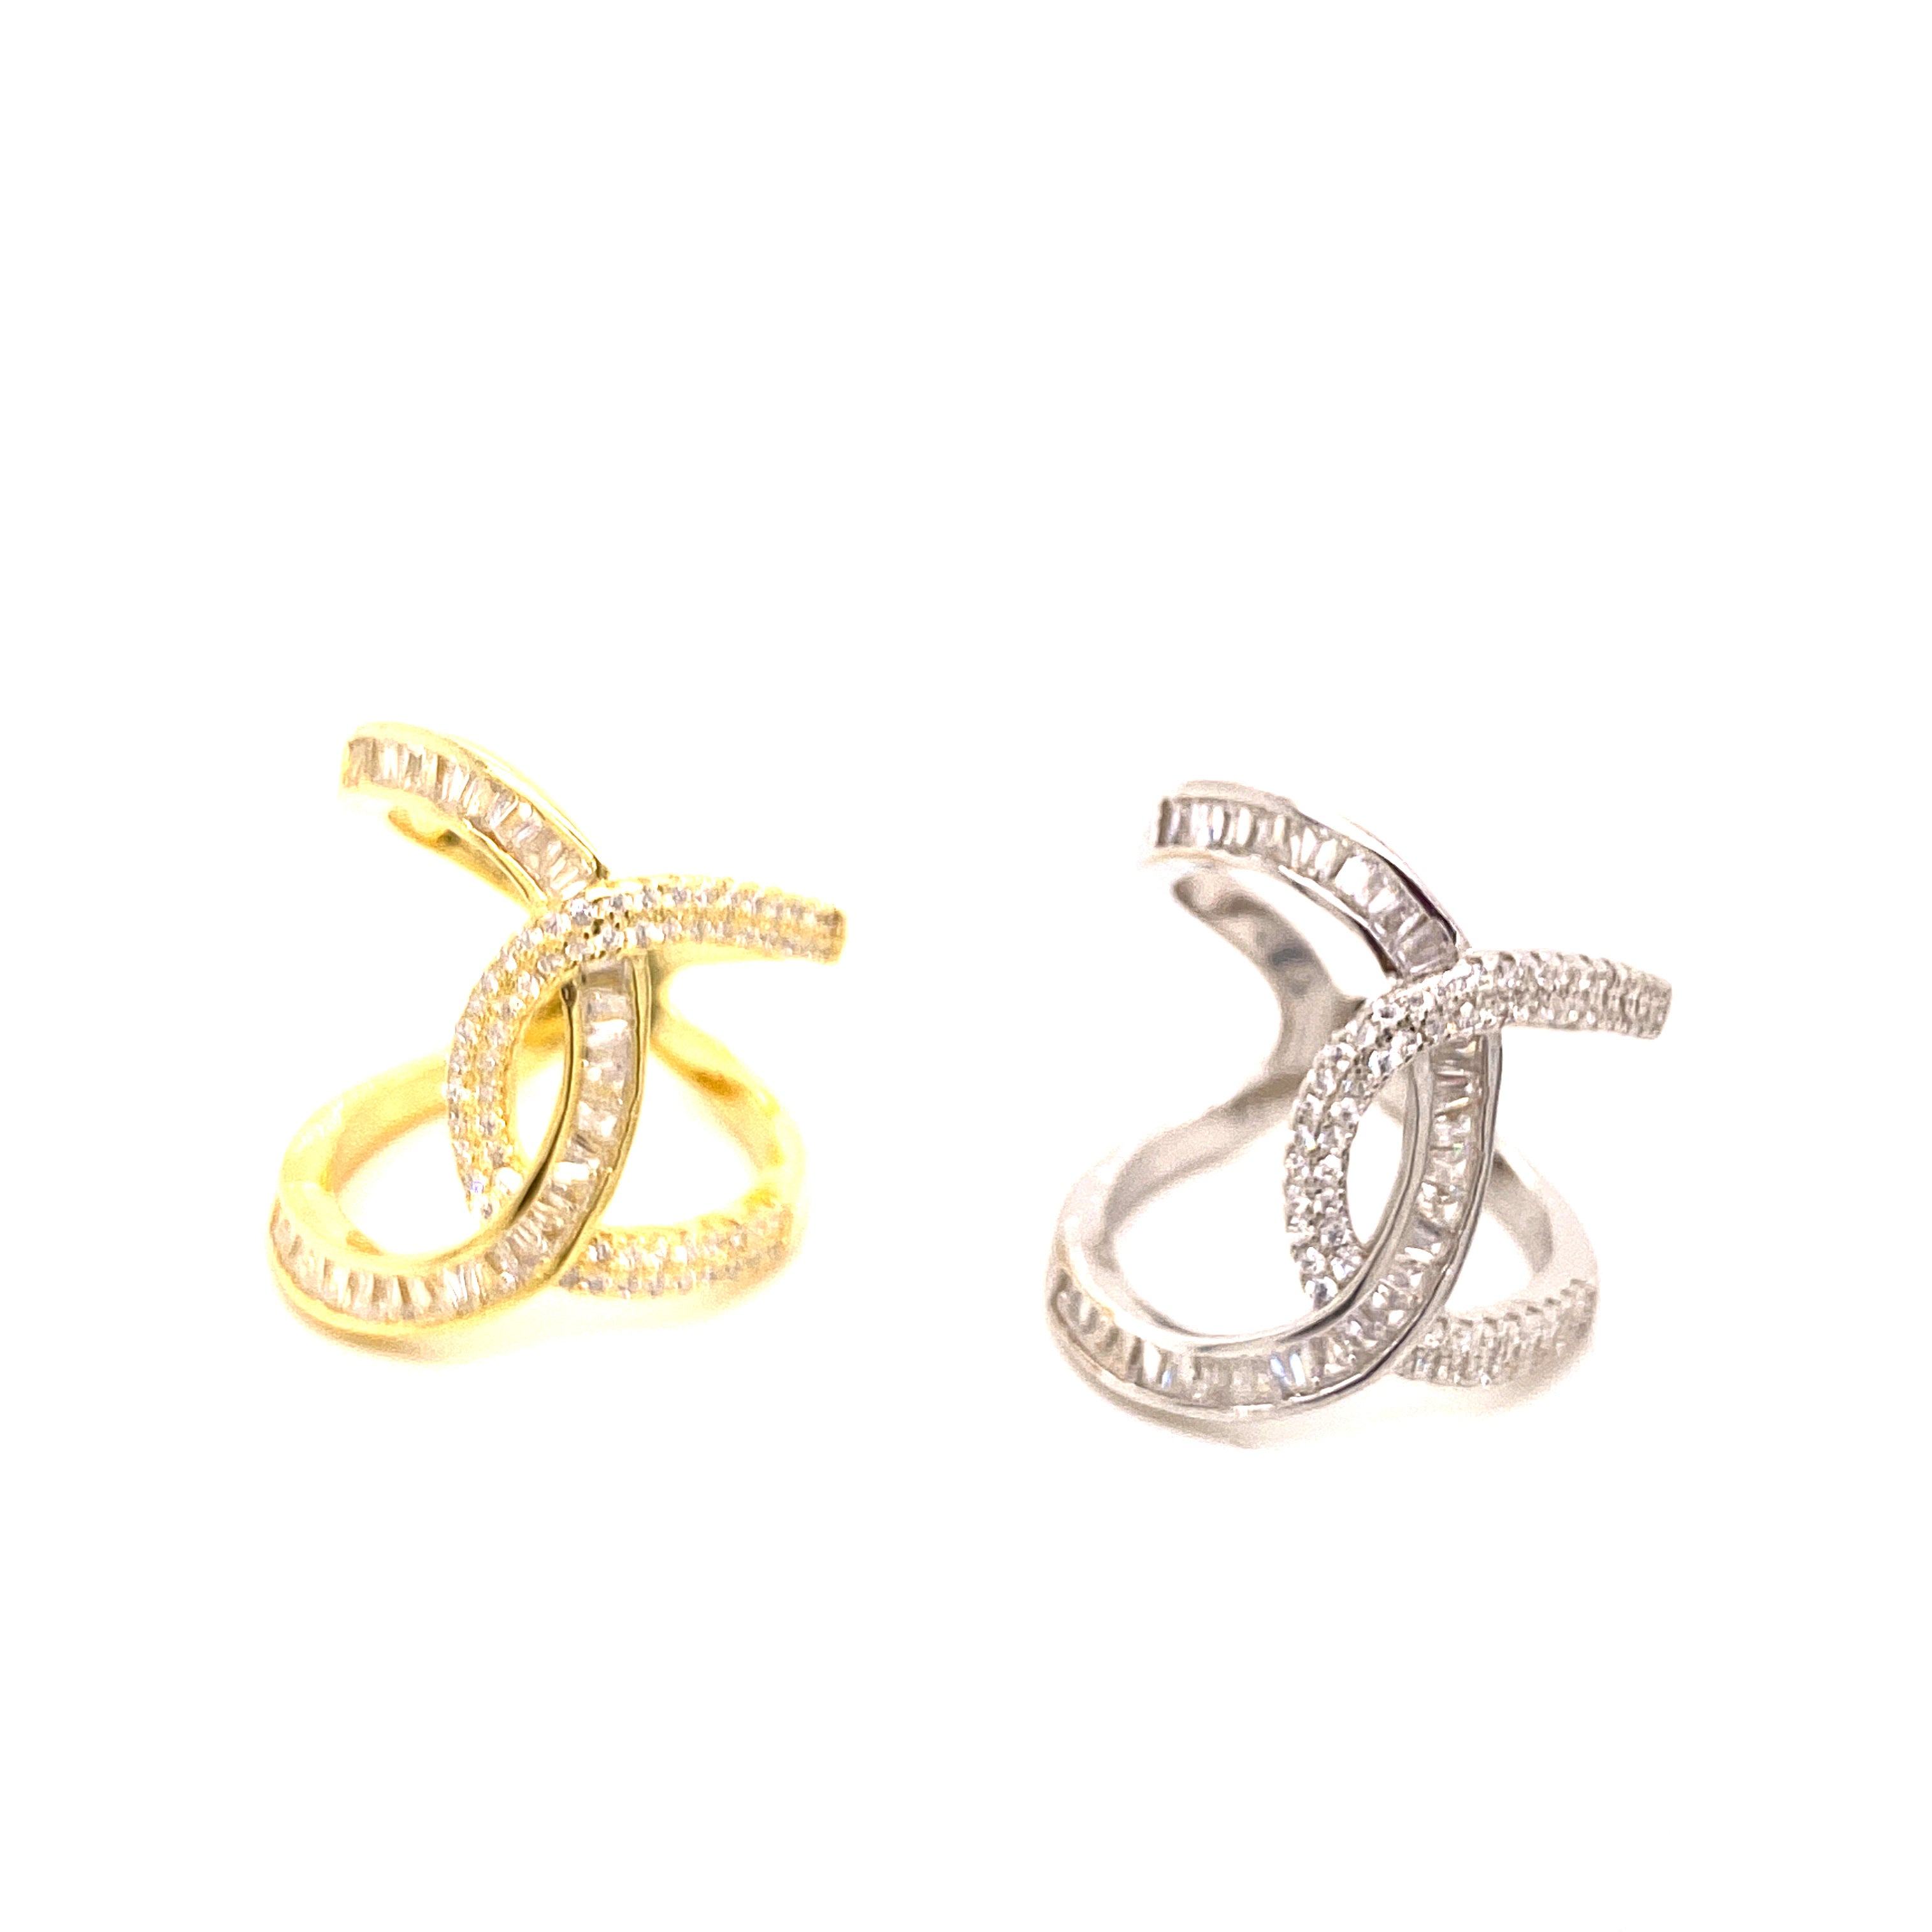 Intertwined Standout Ring